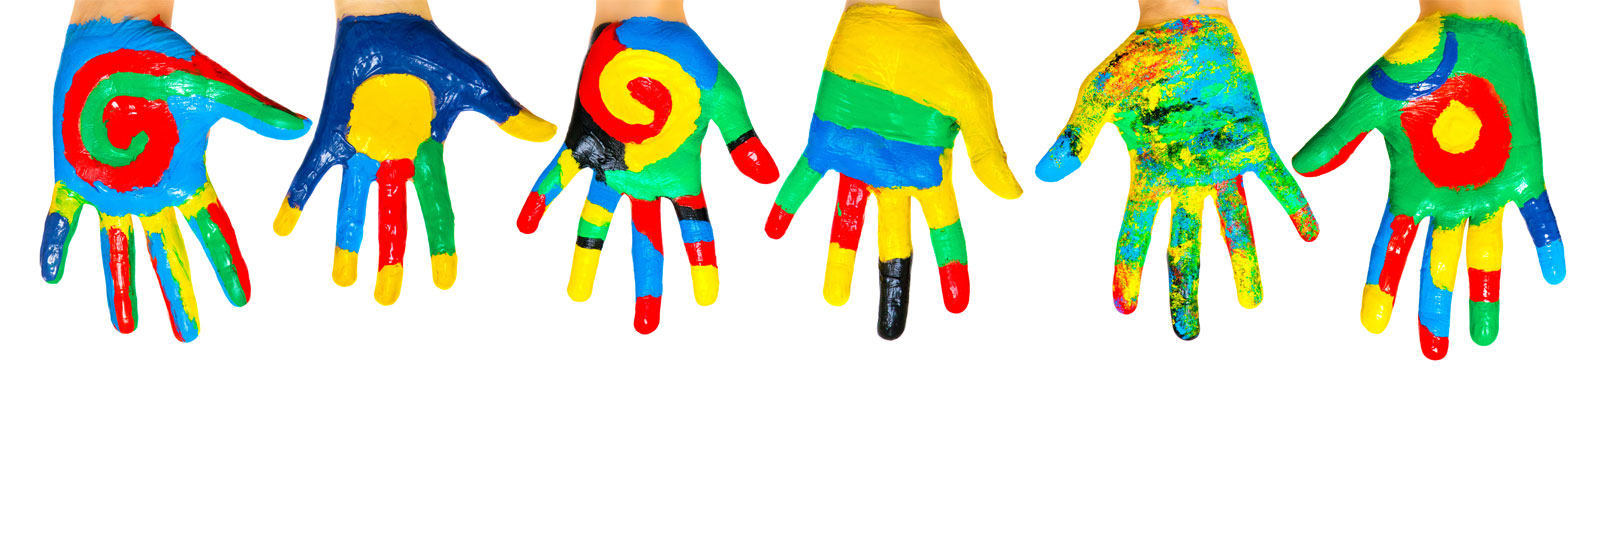 Painted Hands